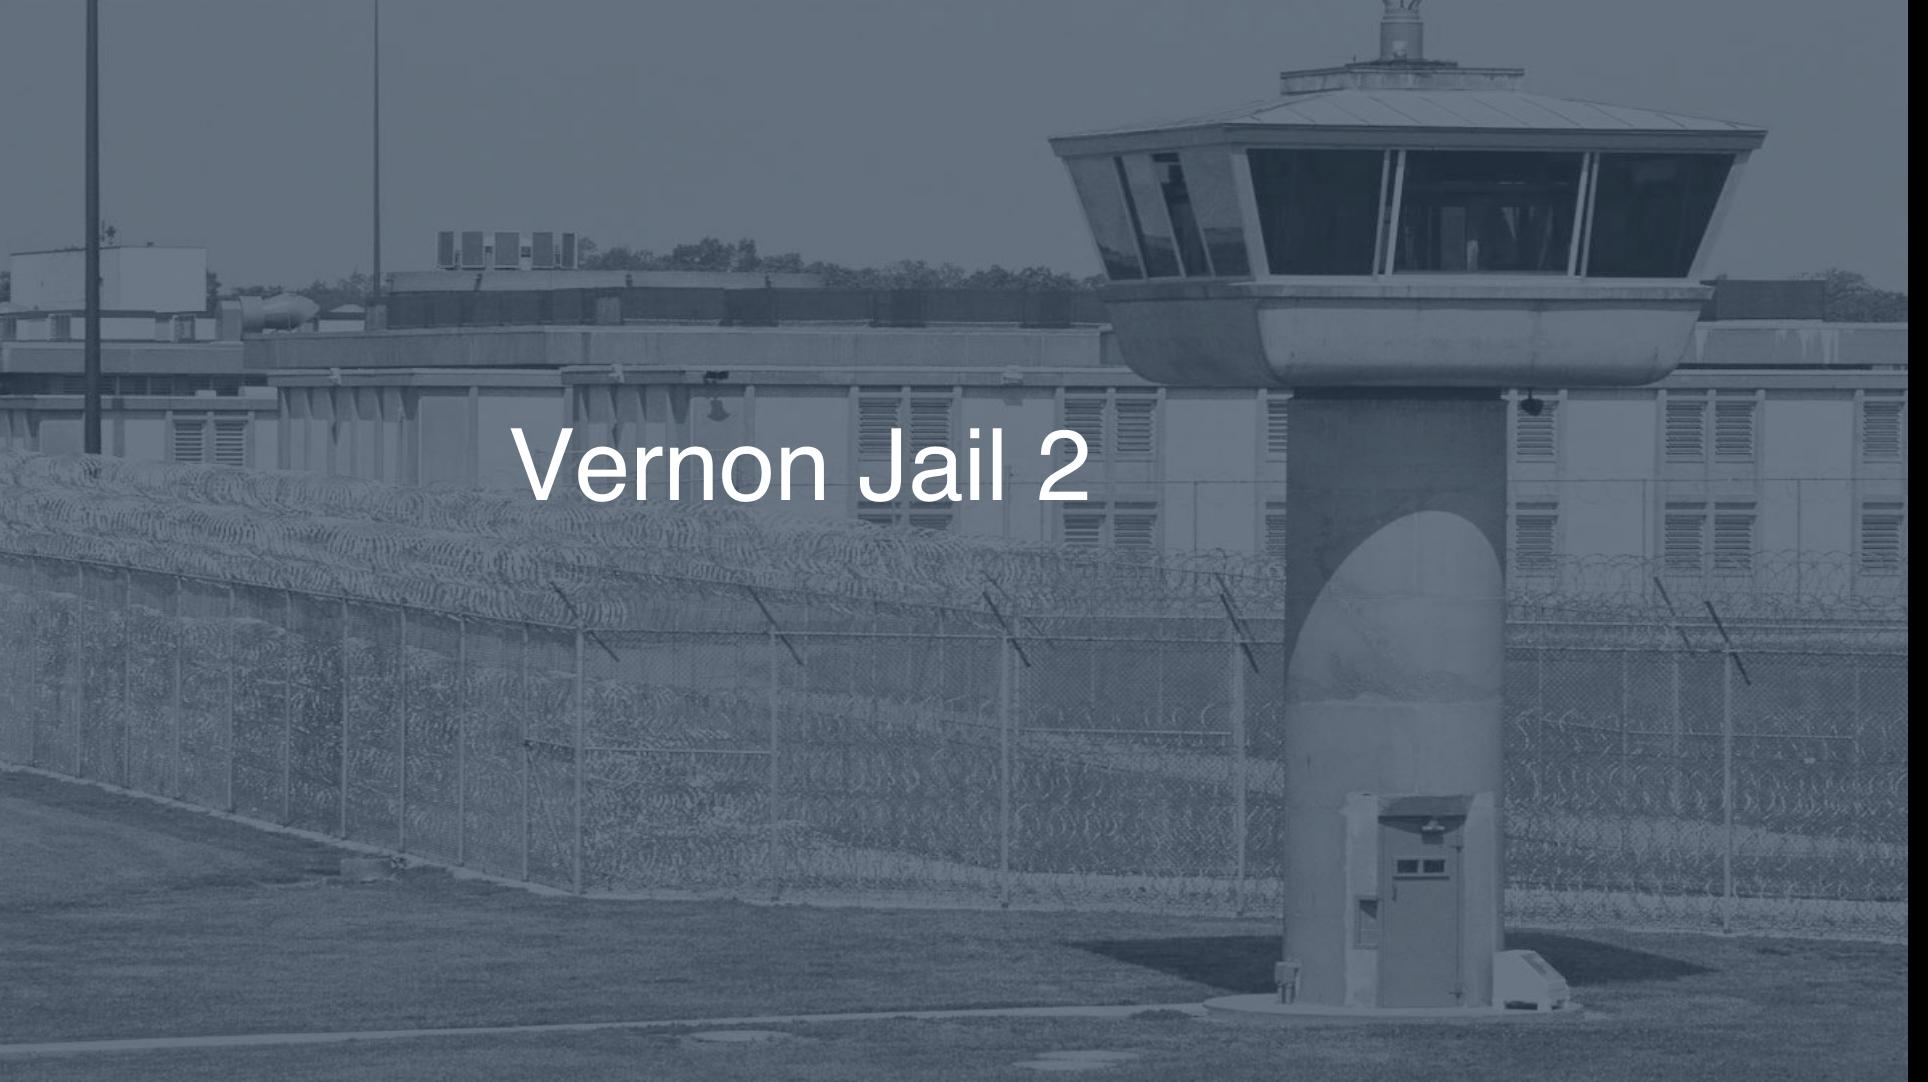 Vernon Jail correctional facility picture